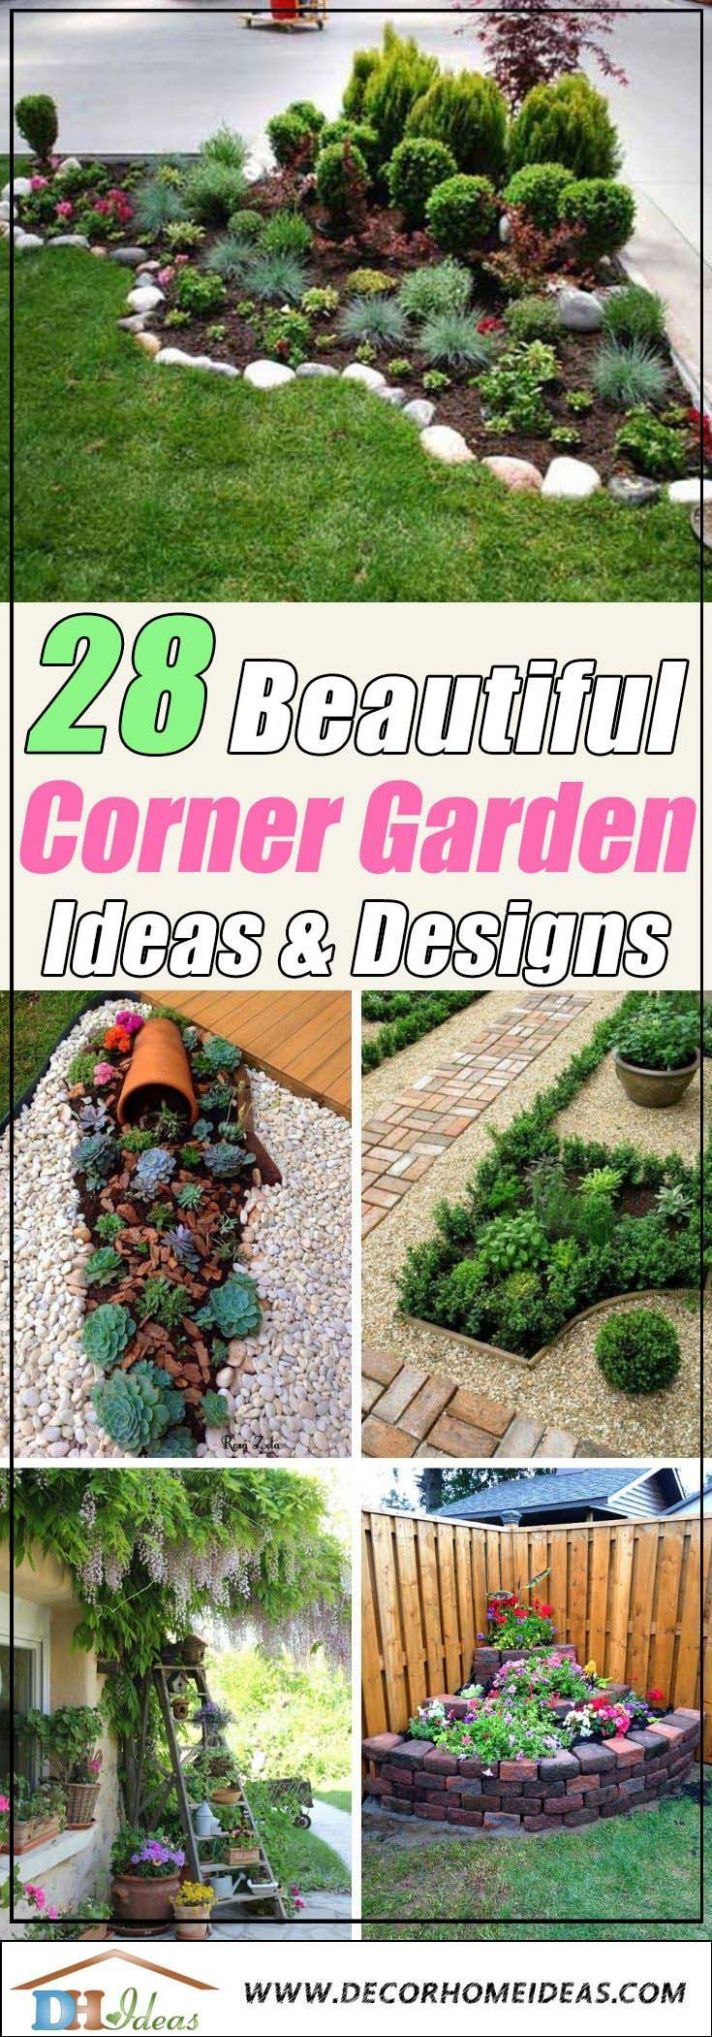 Best Corner Garden Ideas and Designs #garden #corn in 9 ..